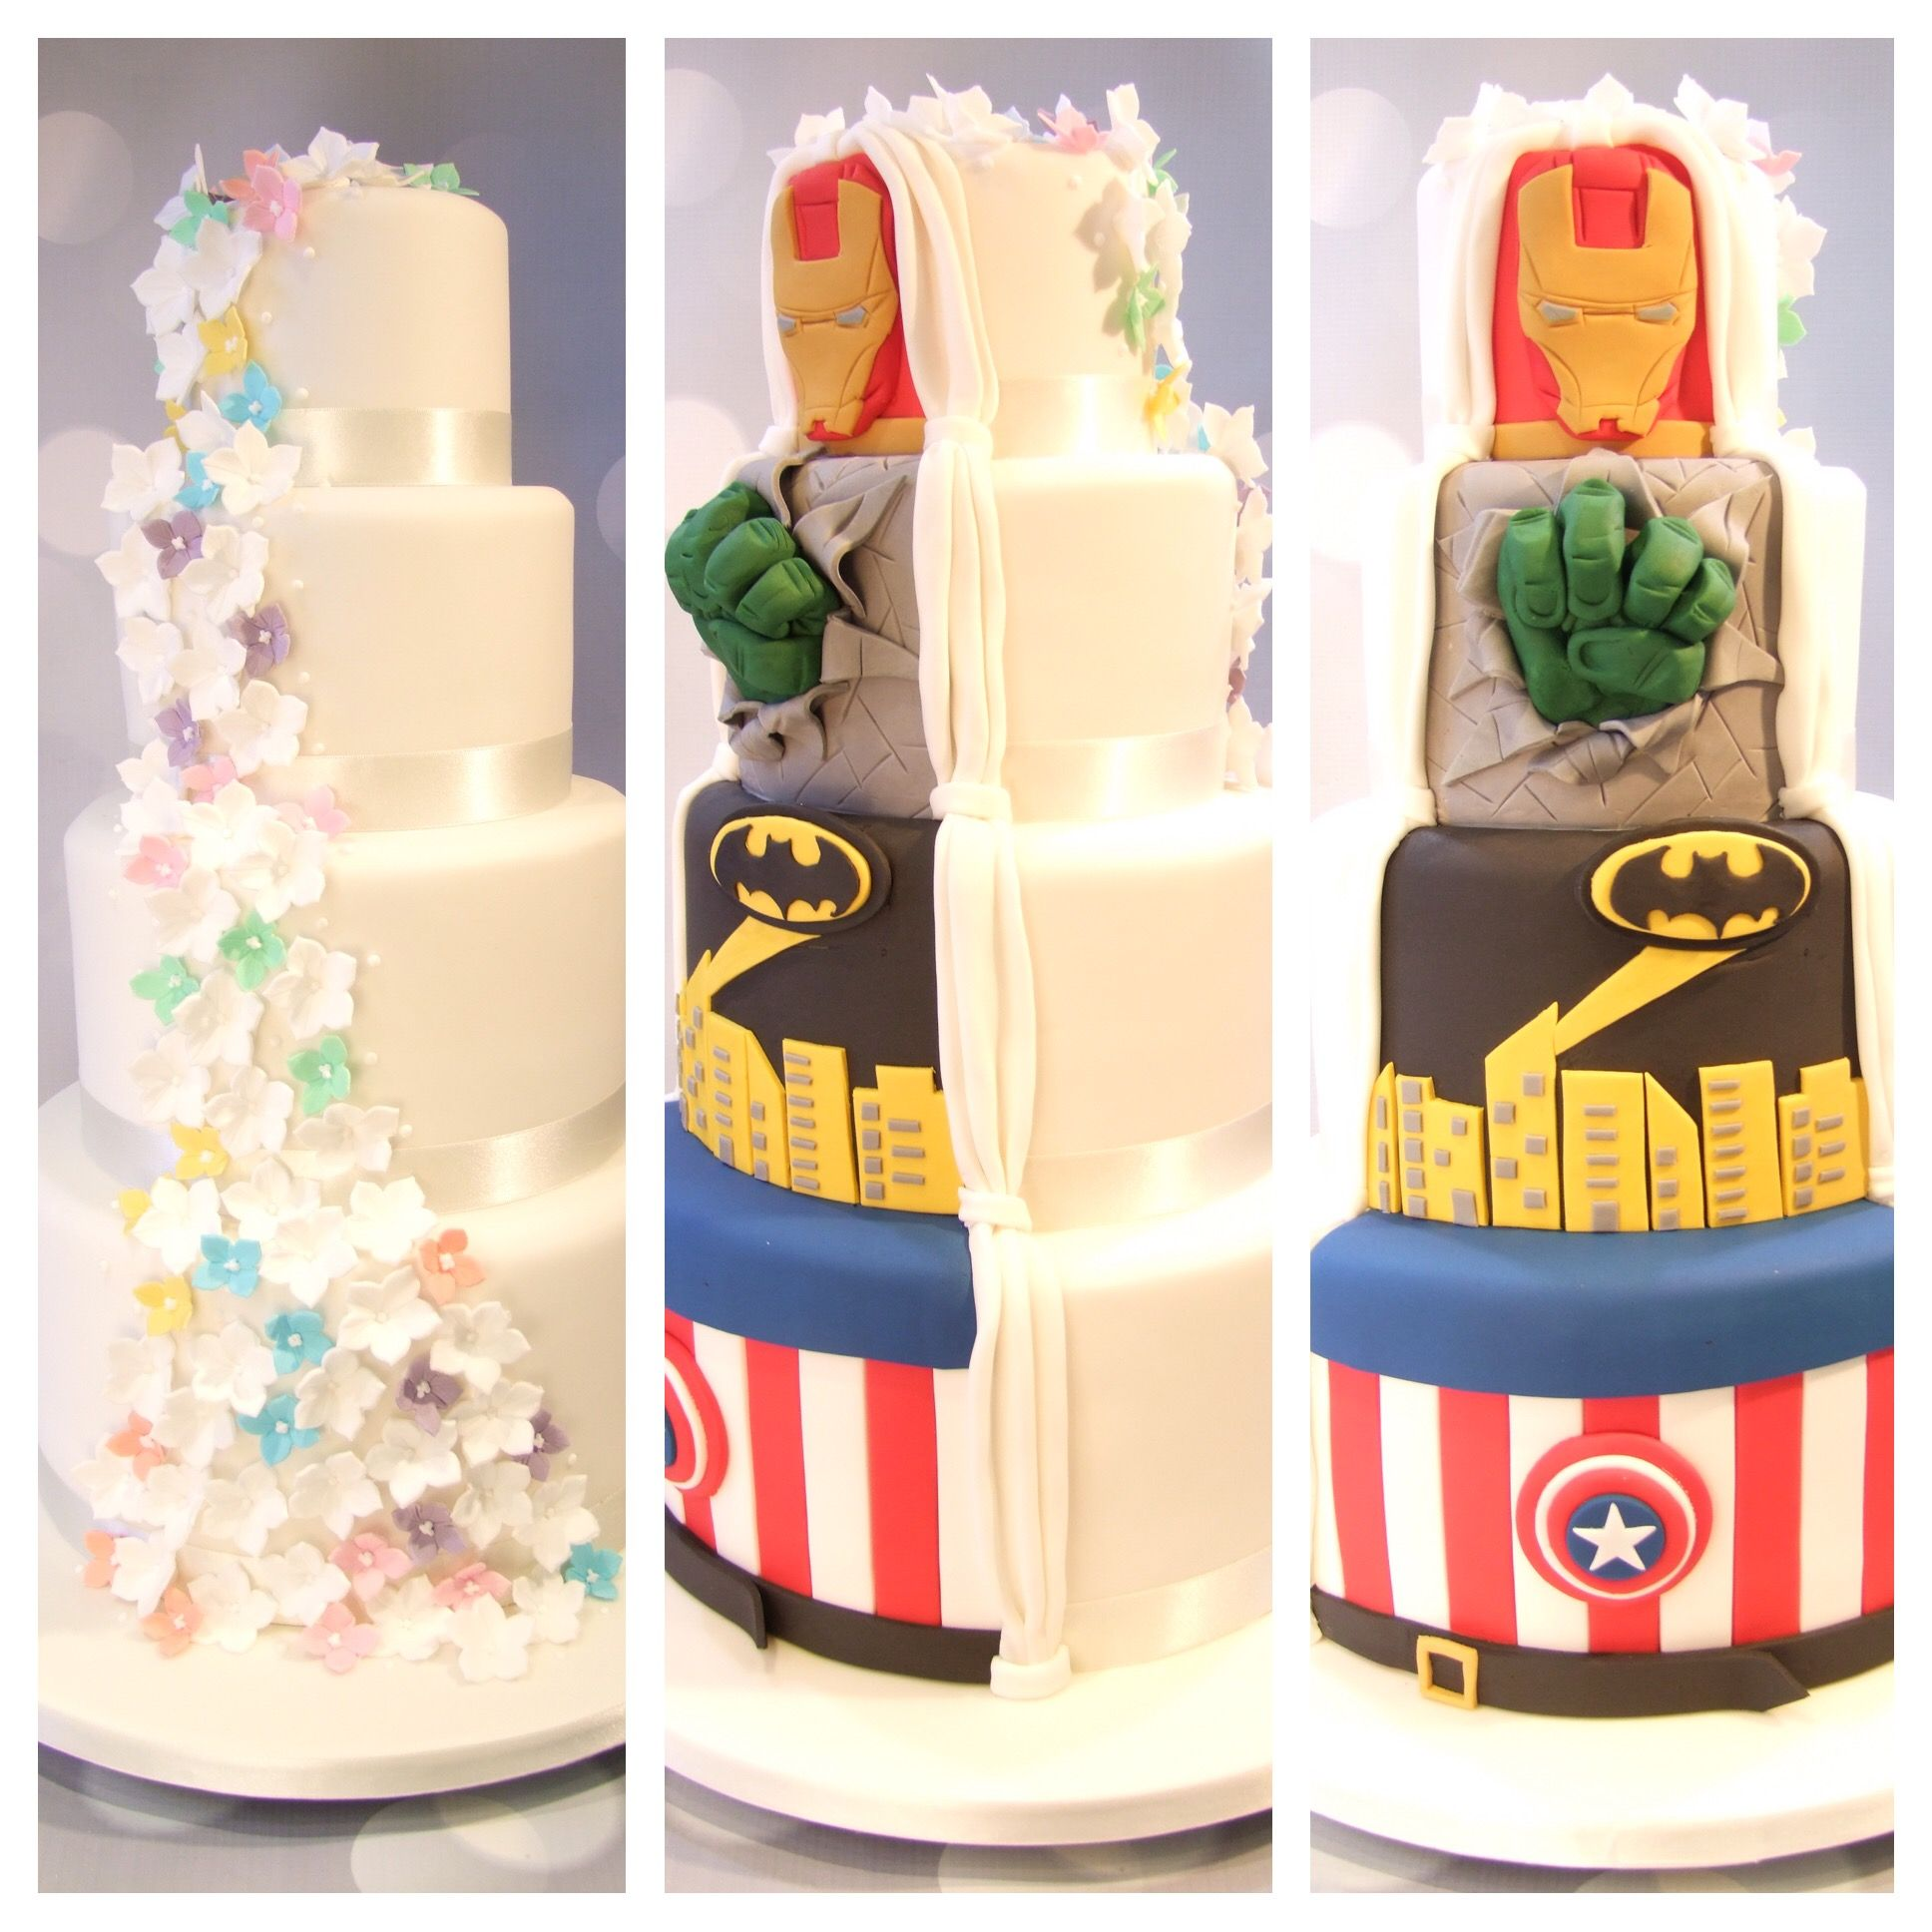 Split Superhero Cake Blossom cascade traditional quirky hidden